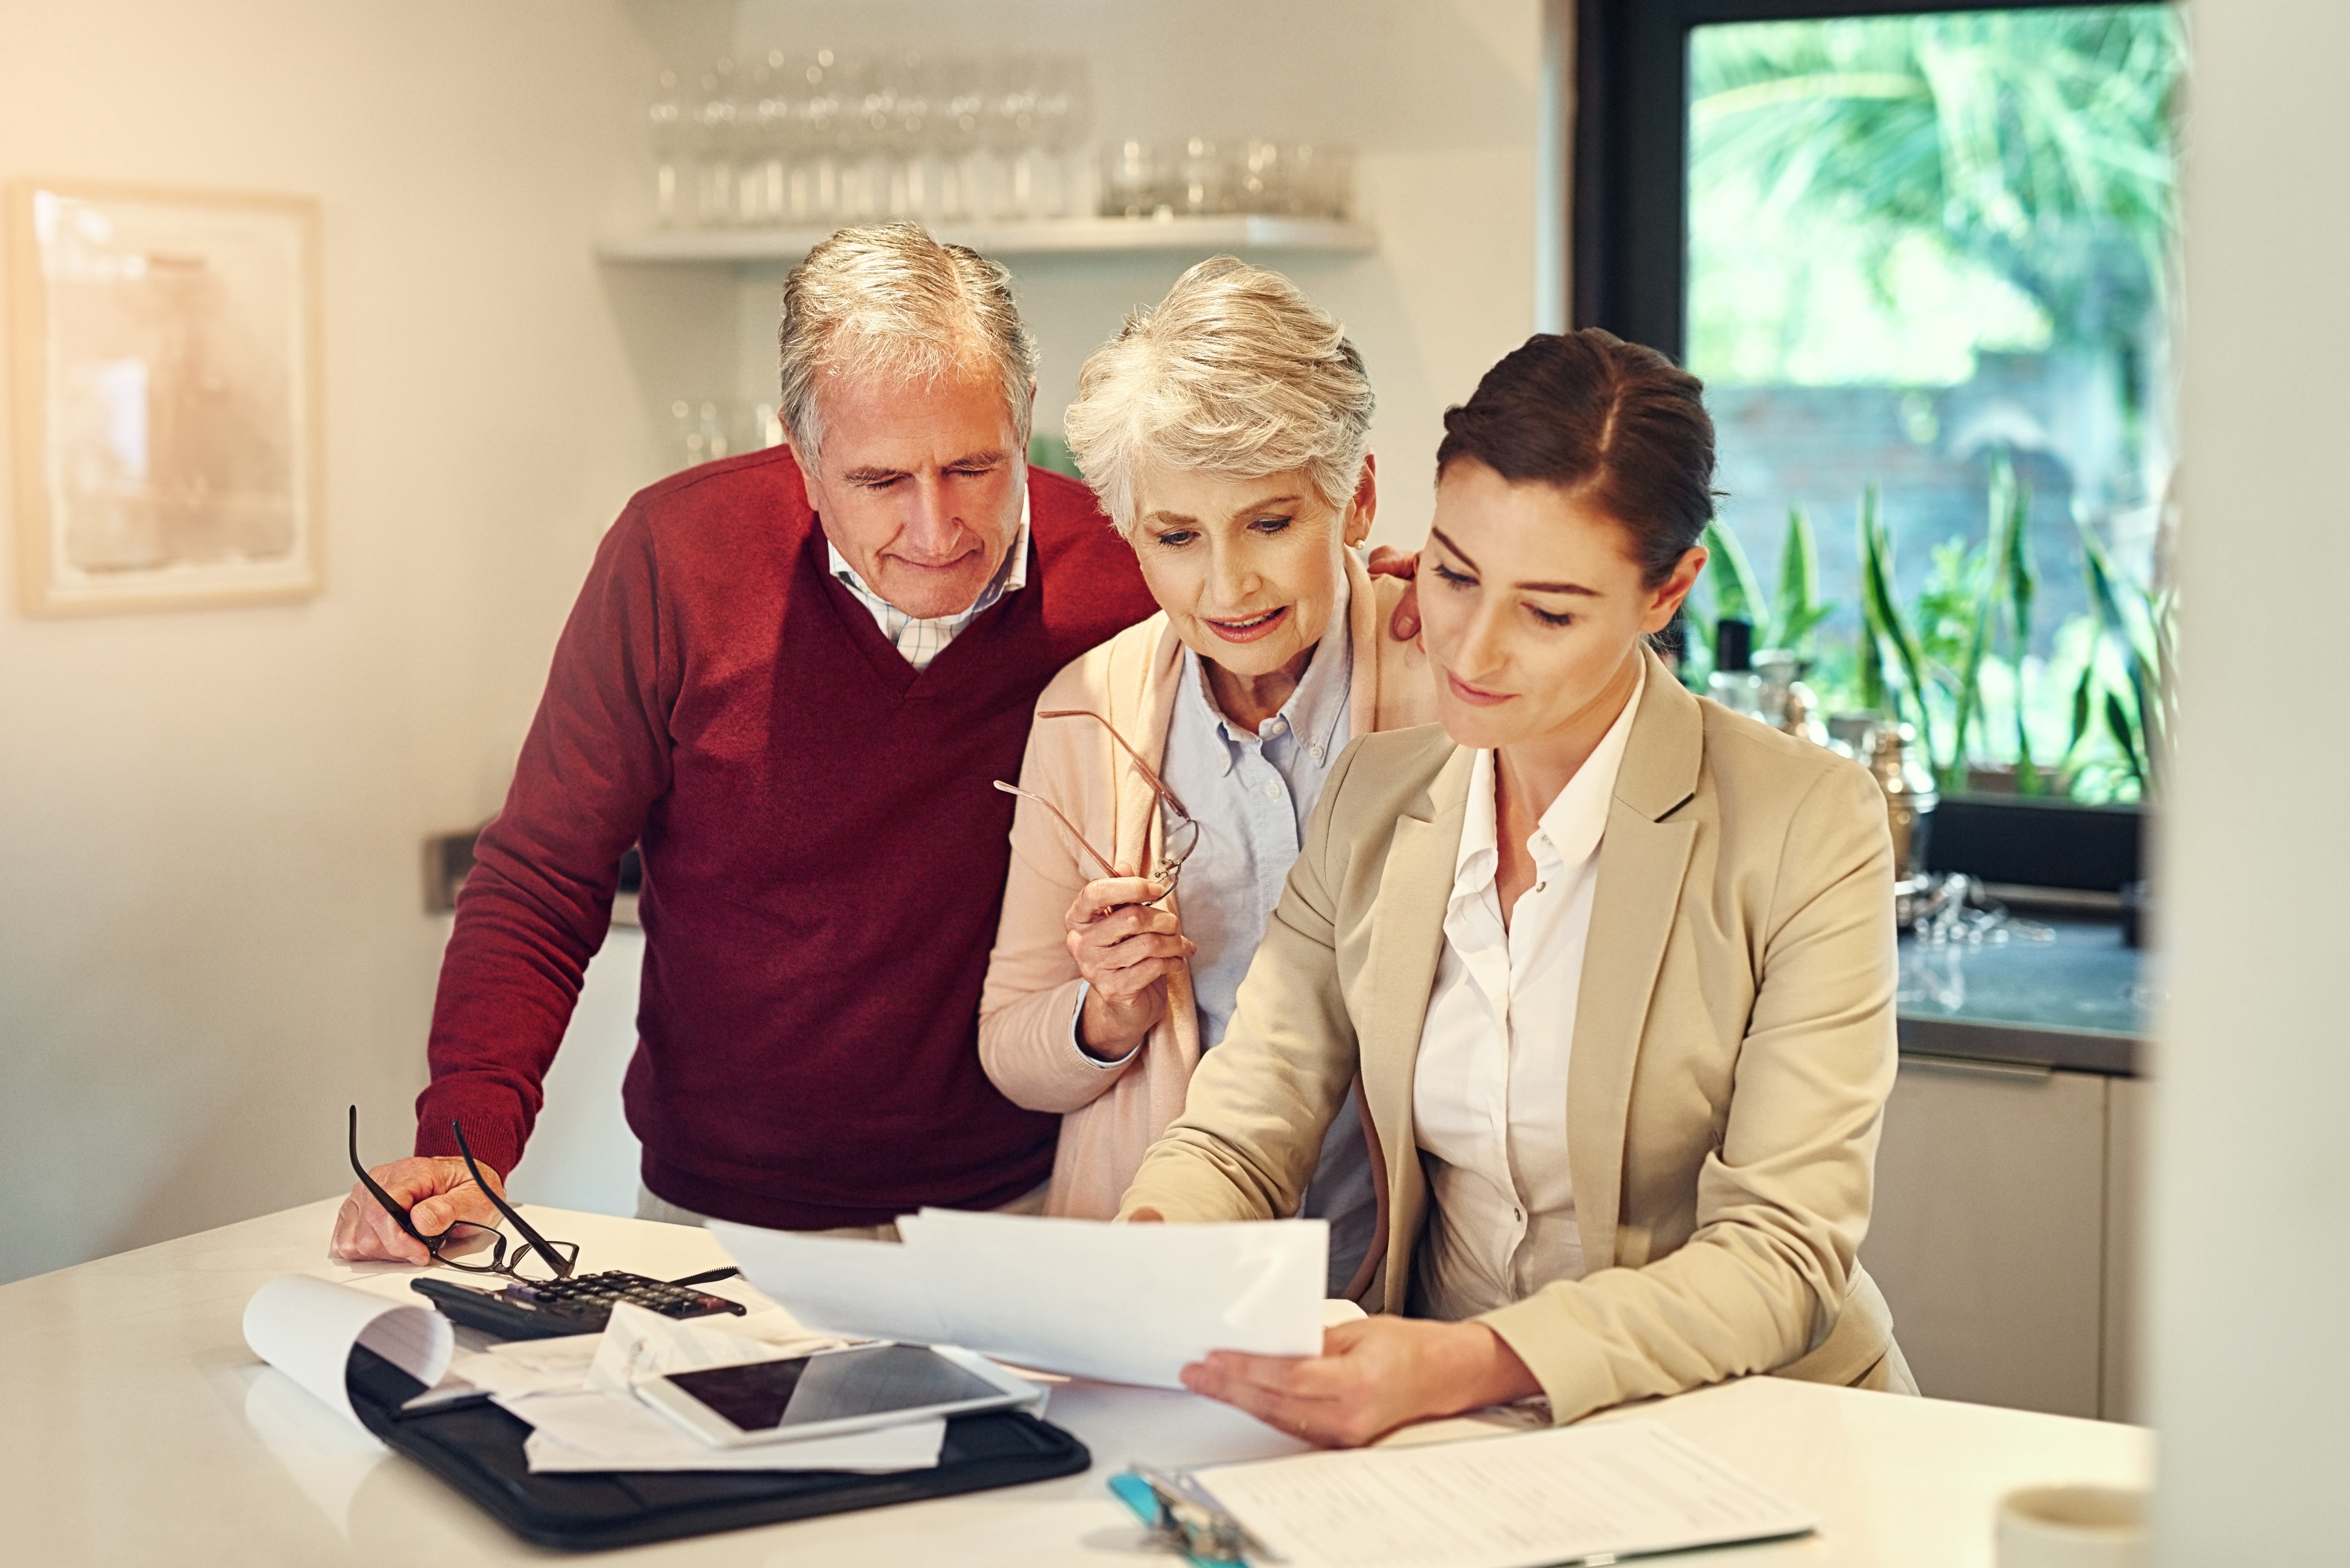 What baby boomers want in their next home